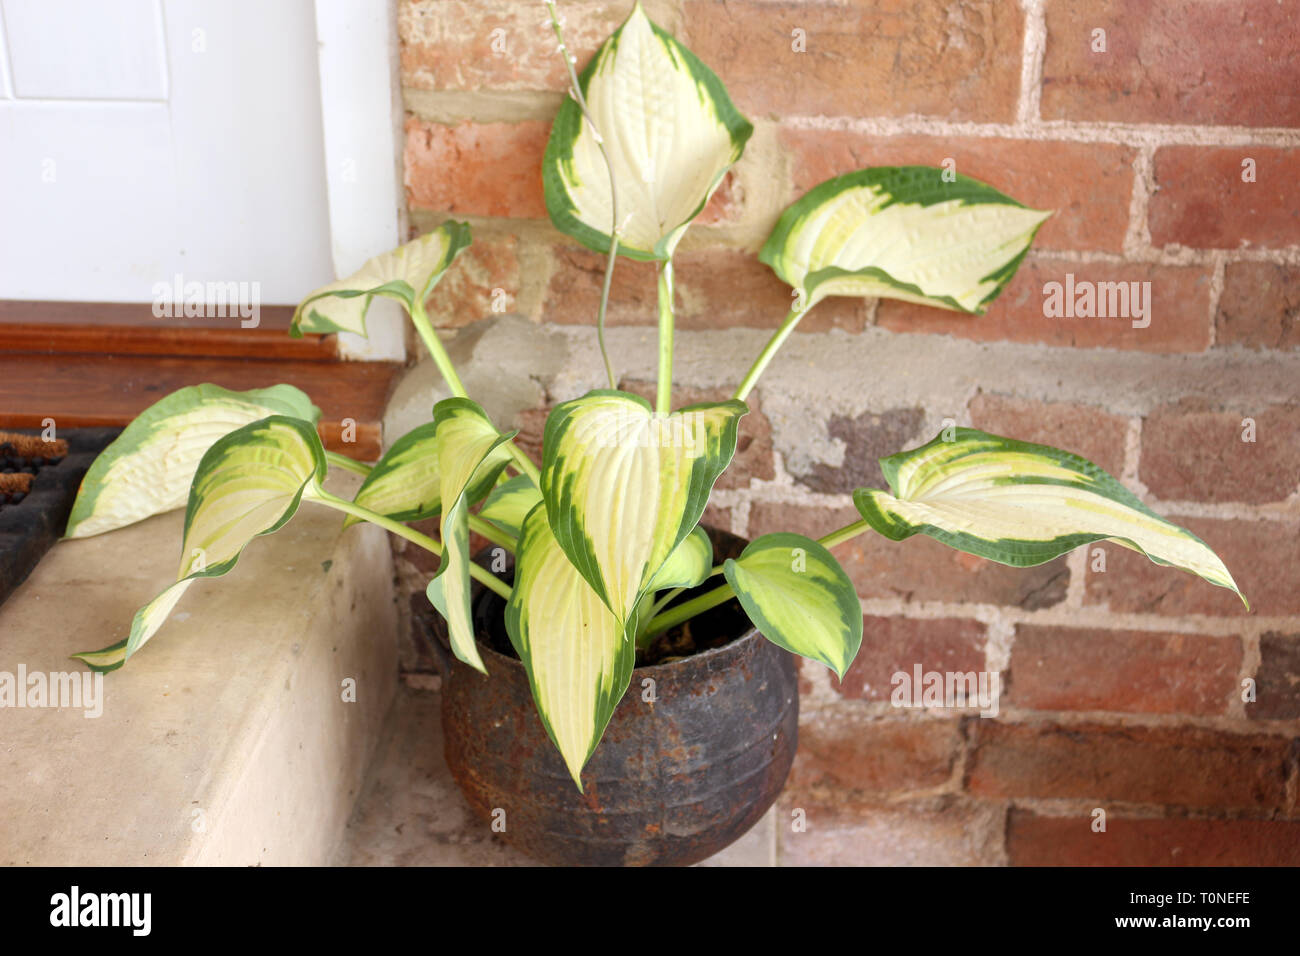 House And Pot Plant Variegated Stock Photos & House And Pot ... on twisted leaf house plants, vine leaf house plants, spotted leaf house plants, red leaf house plants, long leaf house plants, green leaf house plants, purple leaf house plants, tropical green plants, big leaf plants, small leaf house plants, striped leaf house plants,